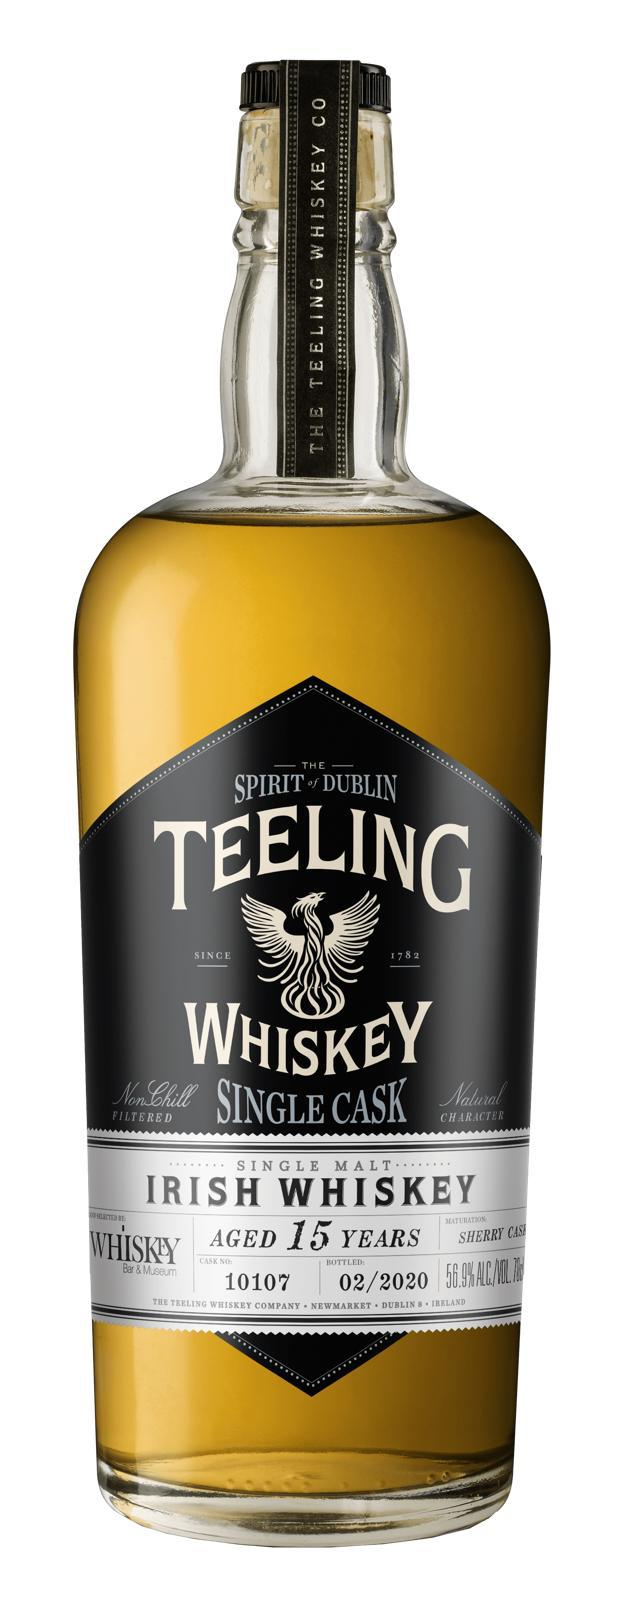 Teeling 15 Single Cask. Limited Edition